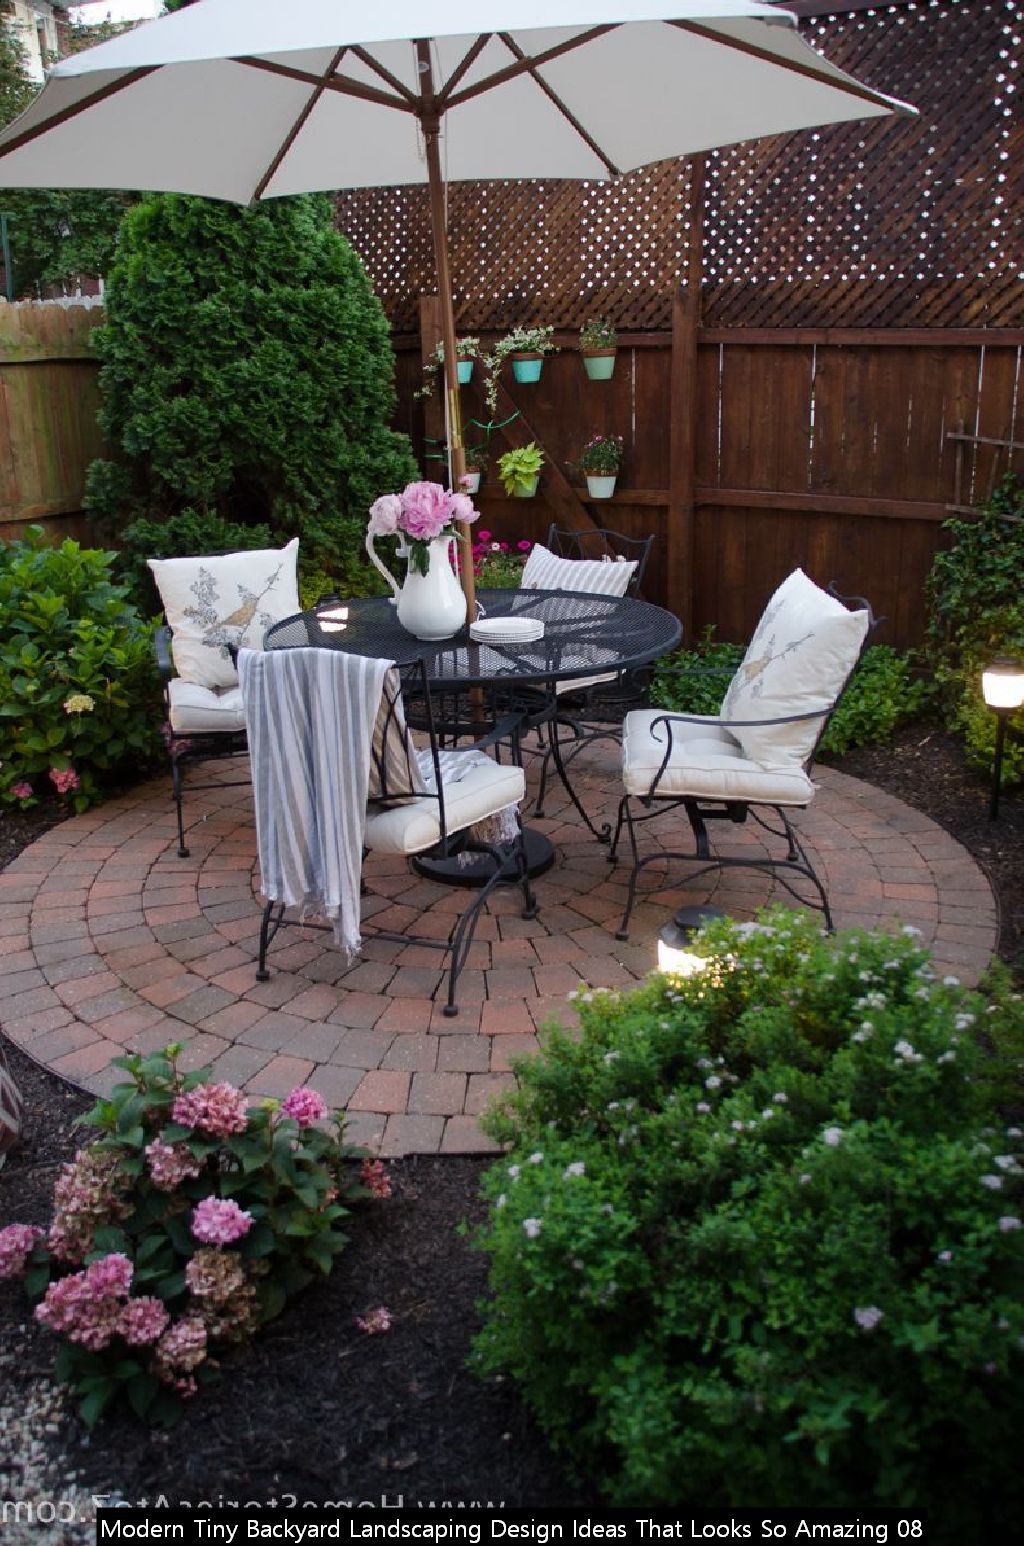 Modern Tiny Backyard Landscaping Design Ideas That Looks So Amazing 08